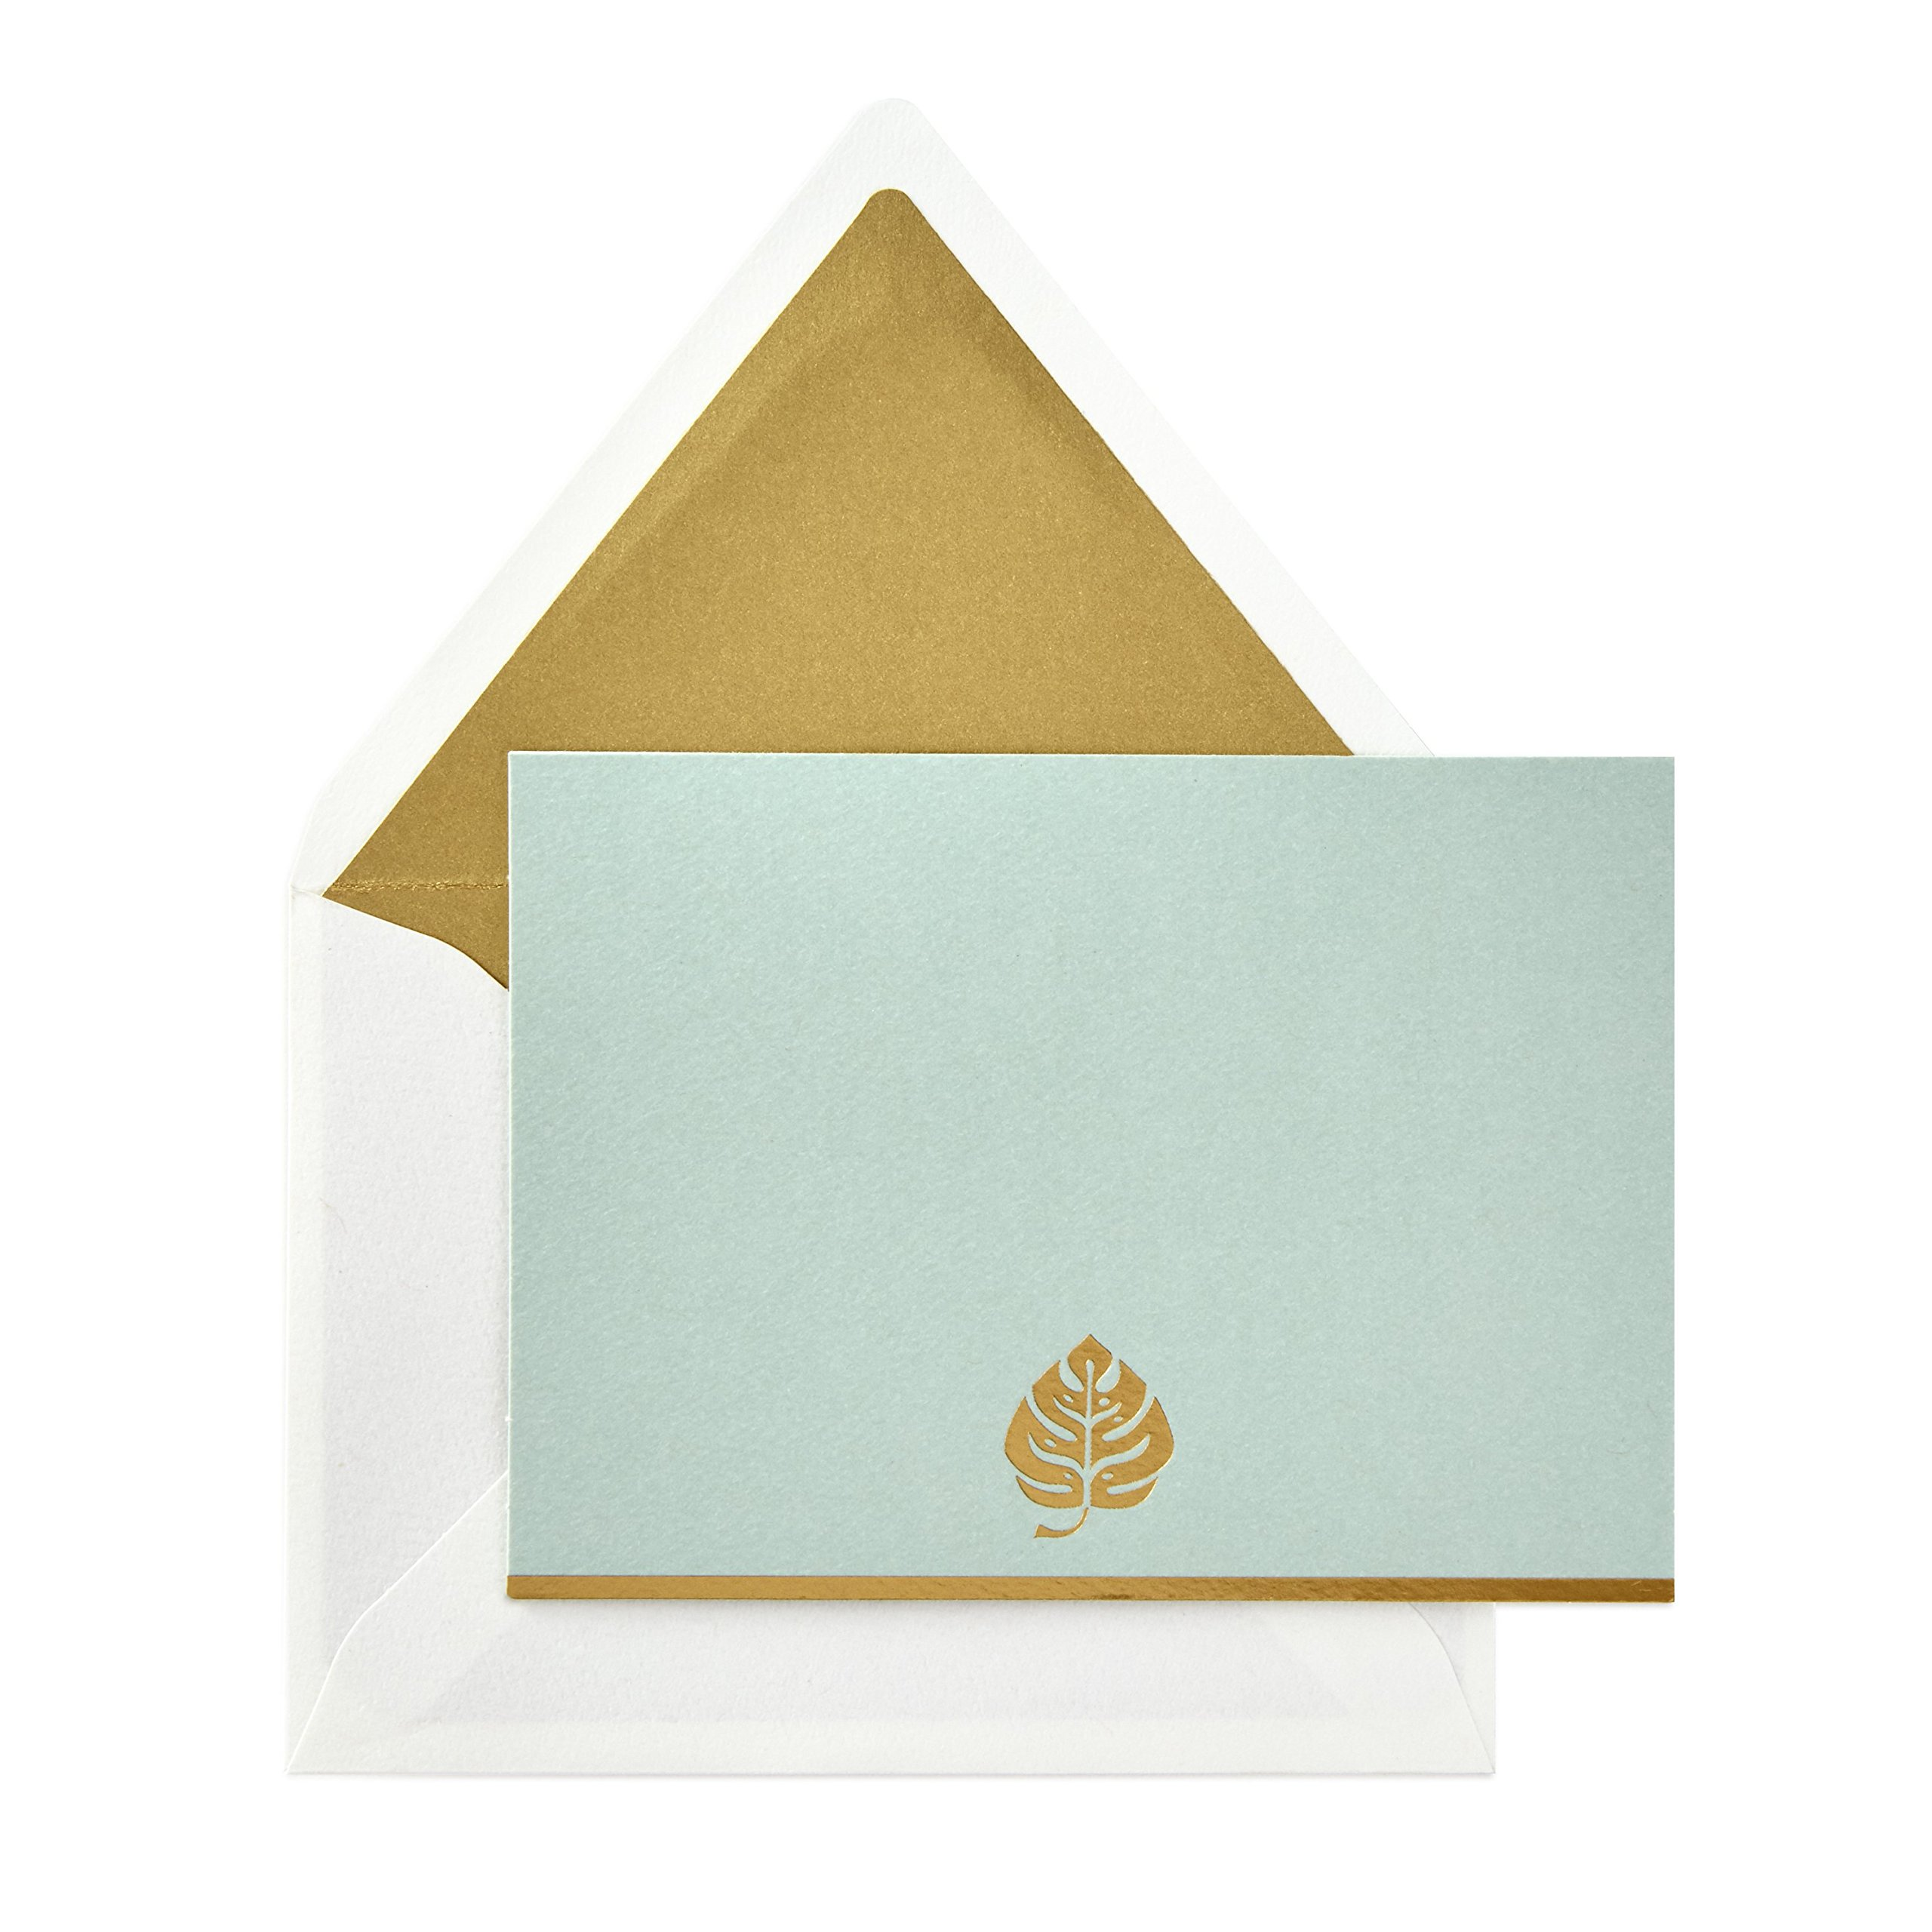 Hallmark Signature Gold Blank Cards, Monstera Leaf (10 Cards with Envelopes)